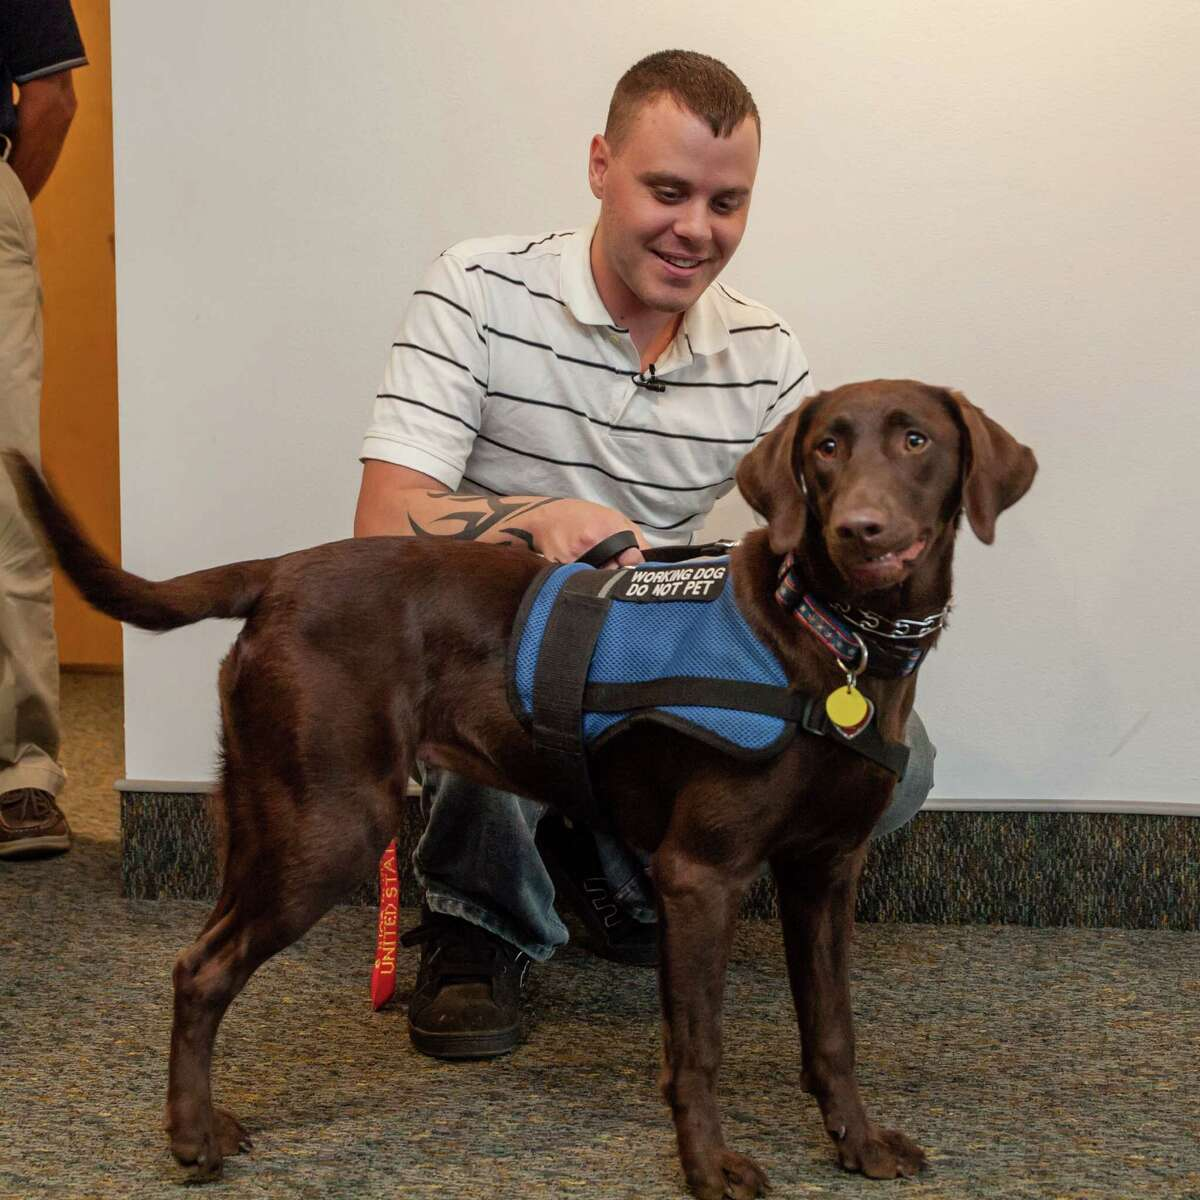 Ottmar Klass / STRIDE Adaptive Sports Jeremony Walton of Castleton, a disabled Marine veteran, greets his new service dog, Alanna, after the canine arrived at the Albany International Airport in Colonie on Aug. 17.